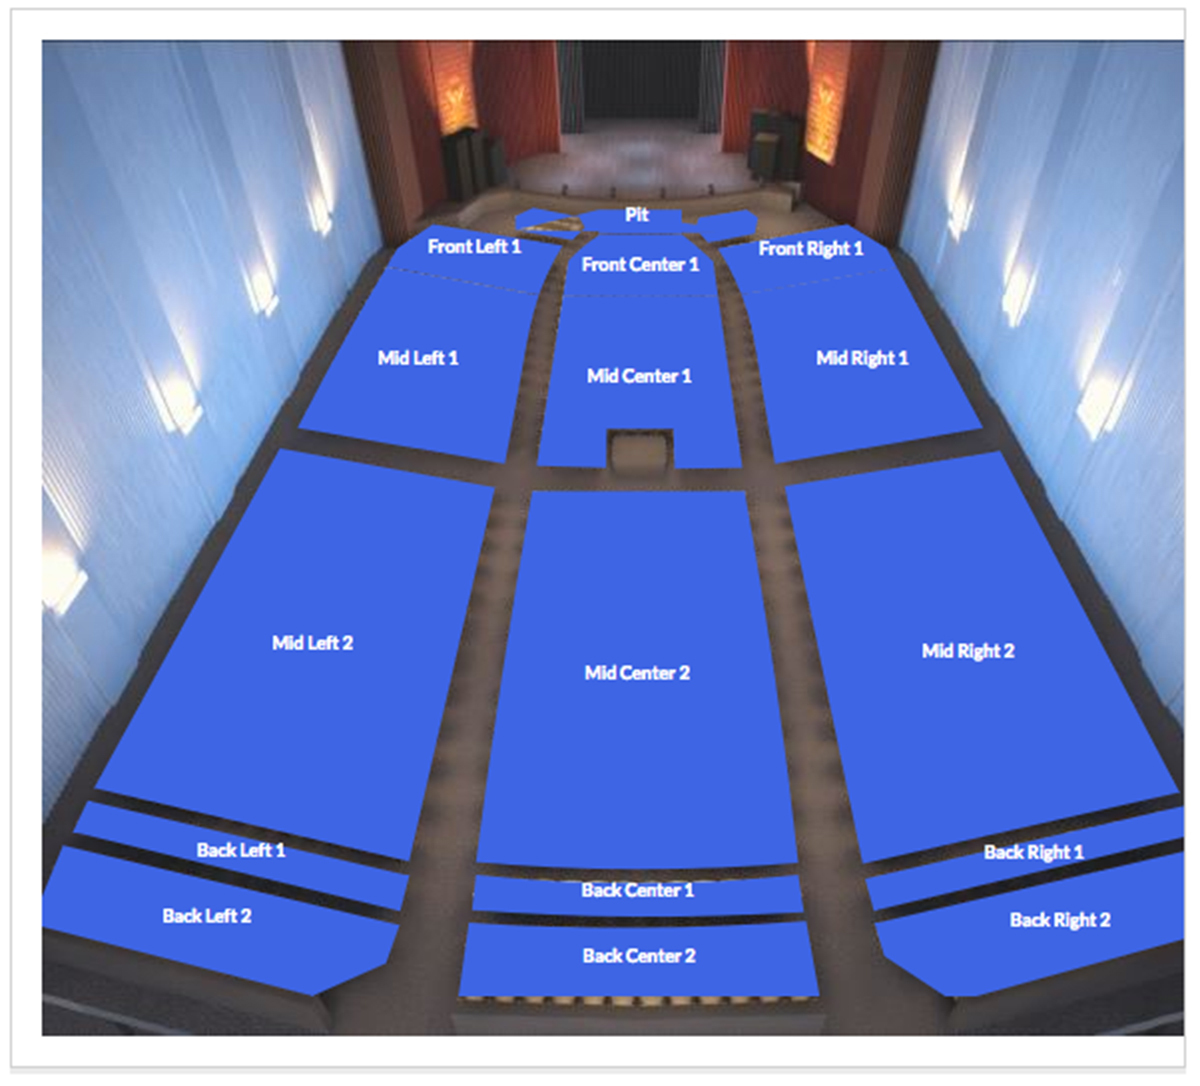 Keswick theatre glenside pa tickets schedule seating charts